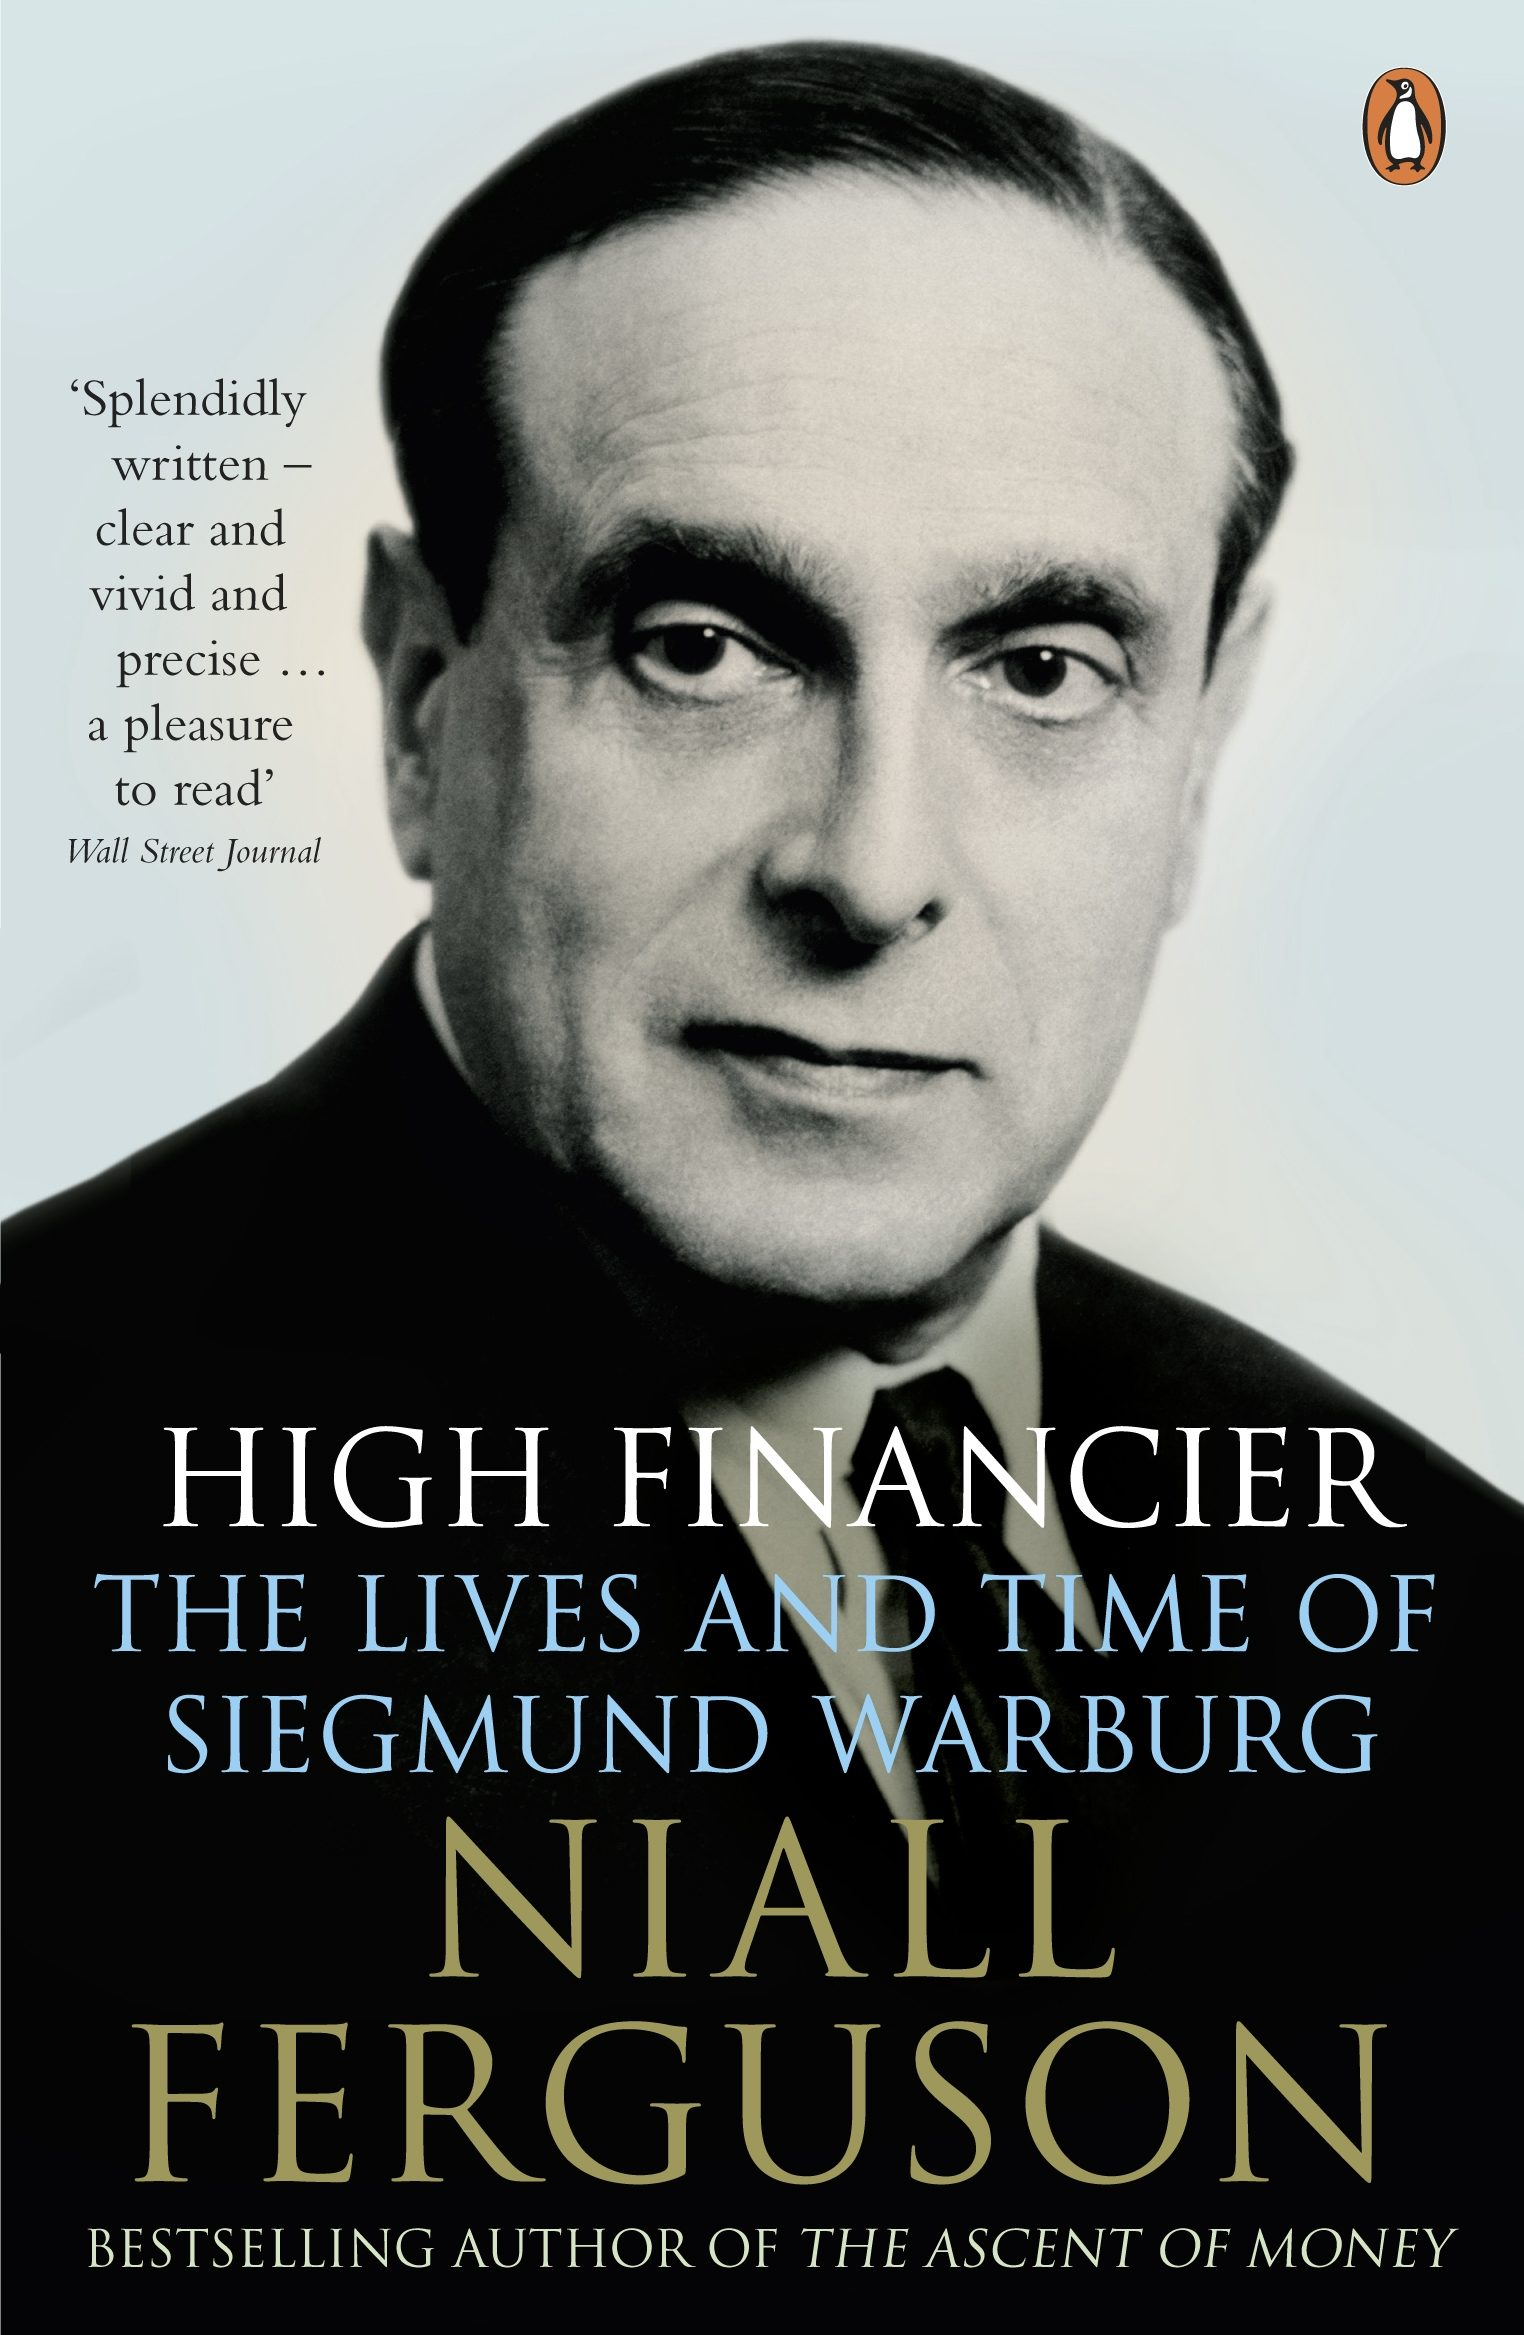 High Financier (ebook)niall Ferguson9780141975849